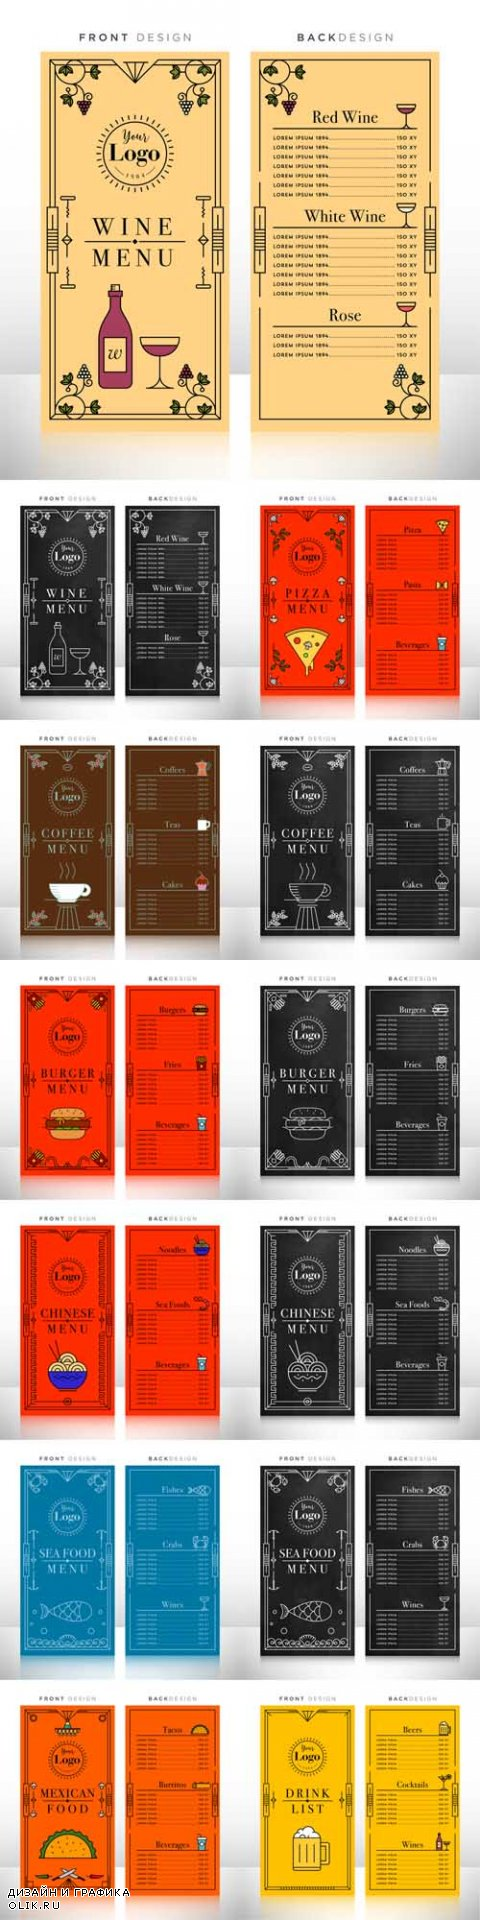 Vector Drink and Food Menu Design Templates